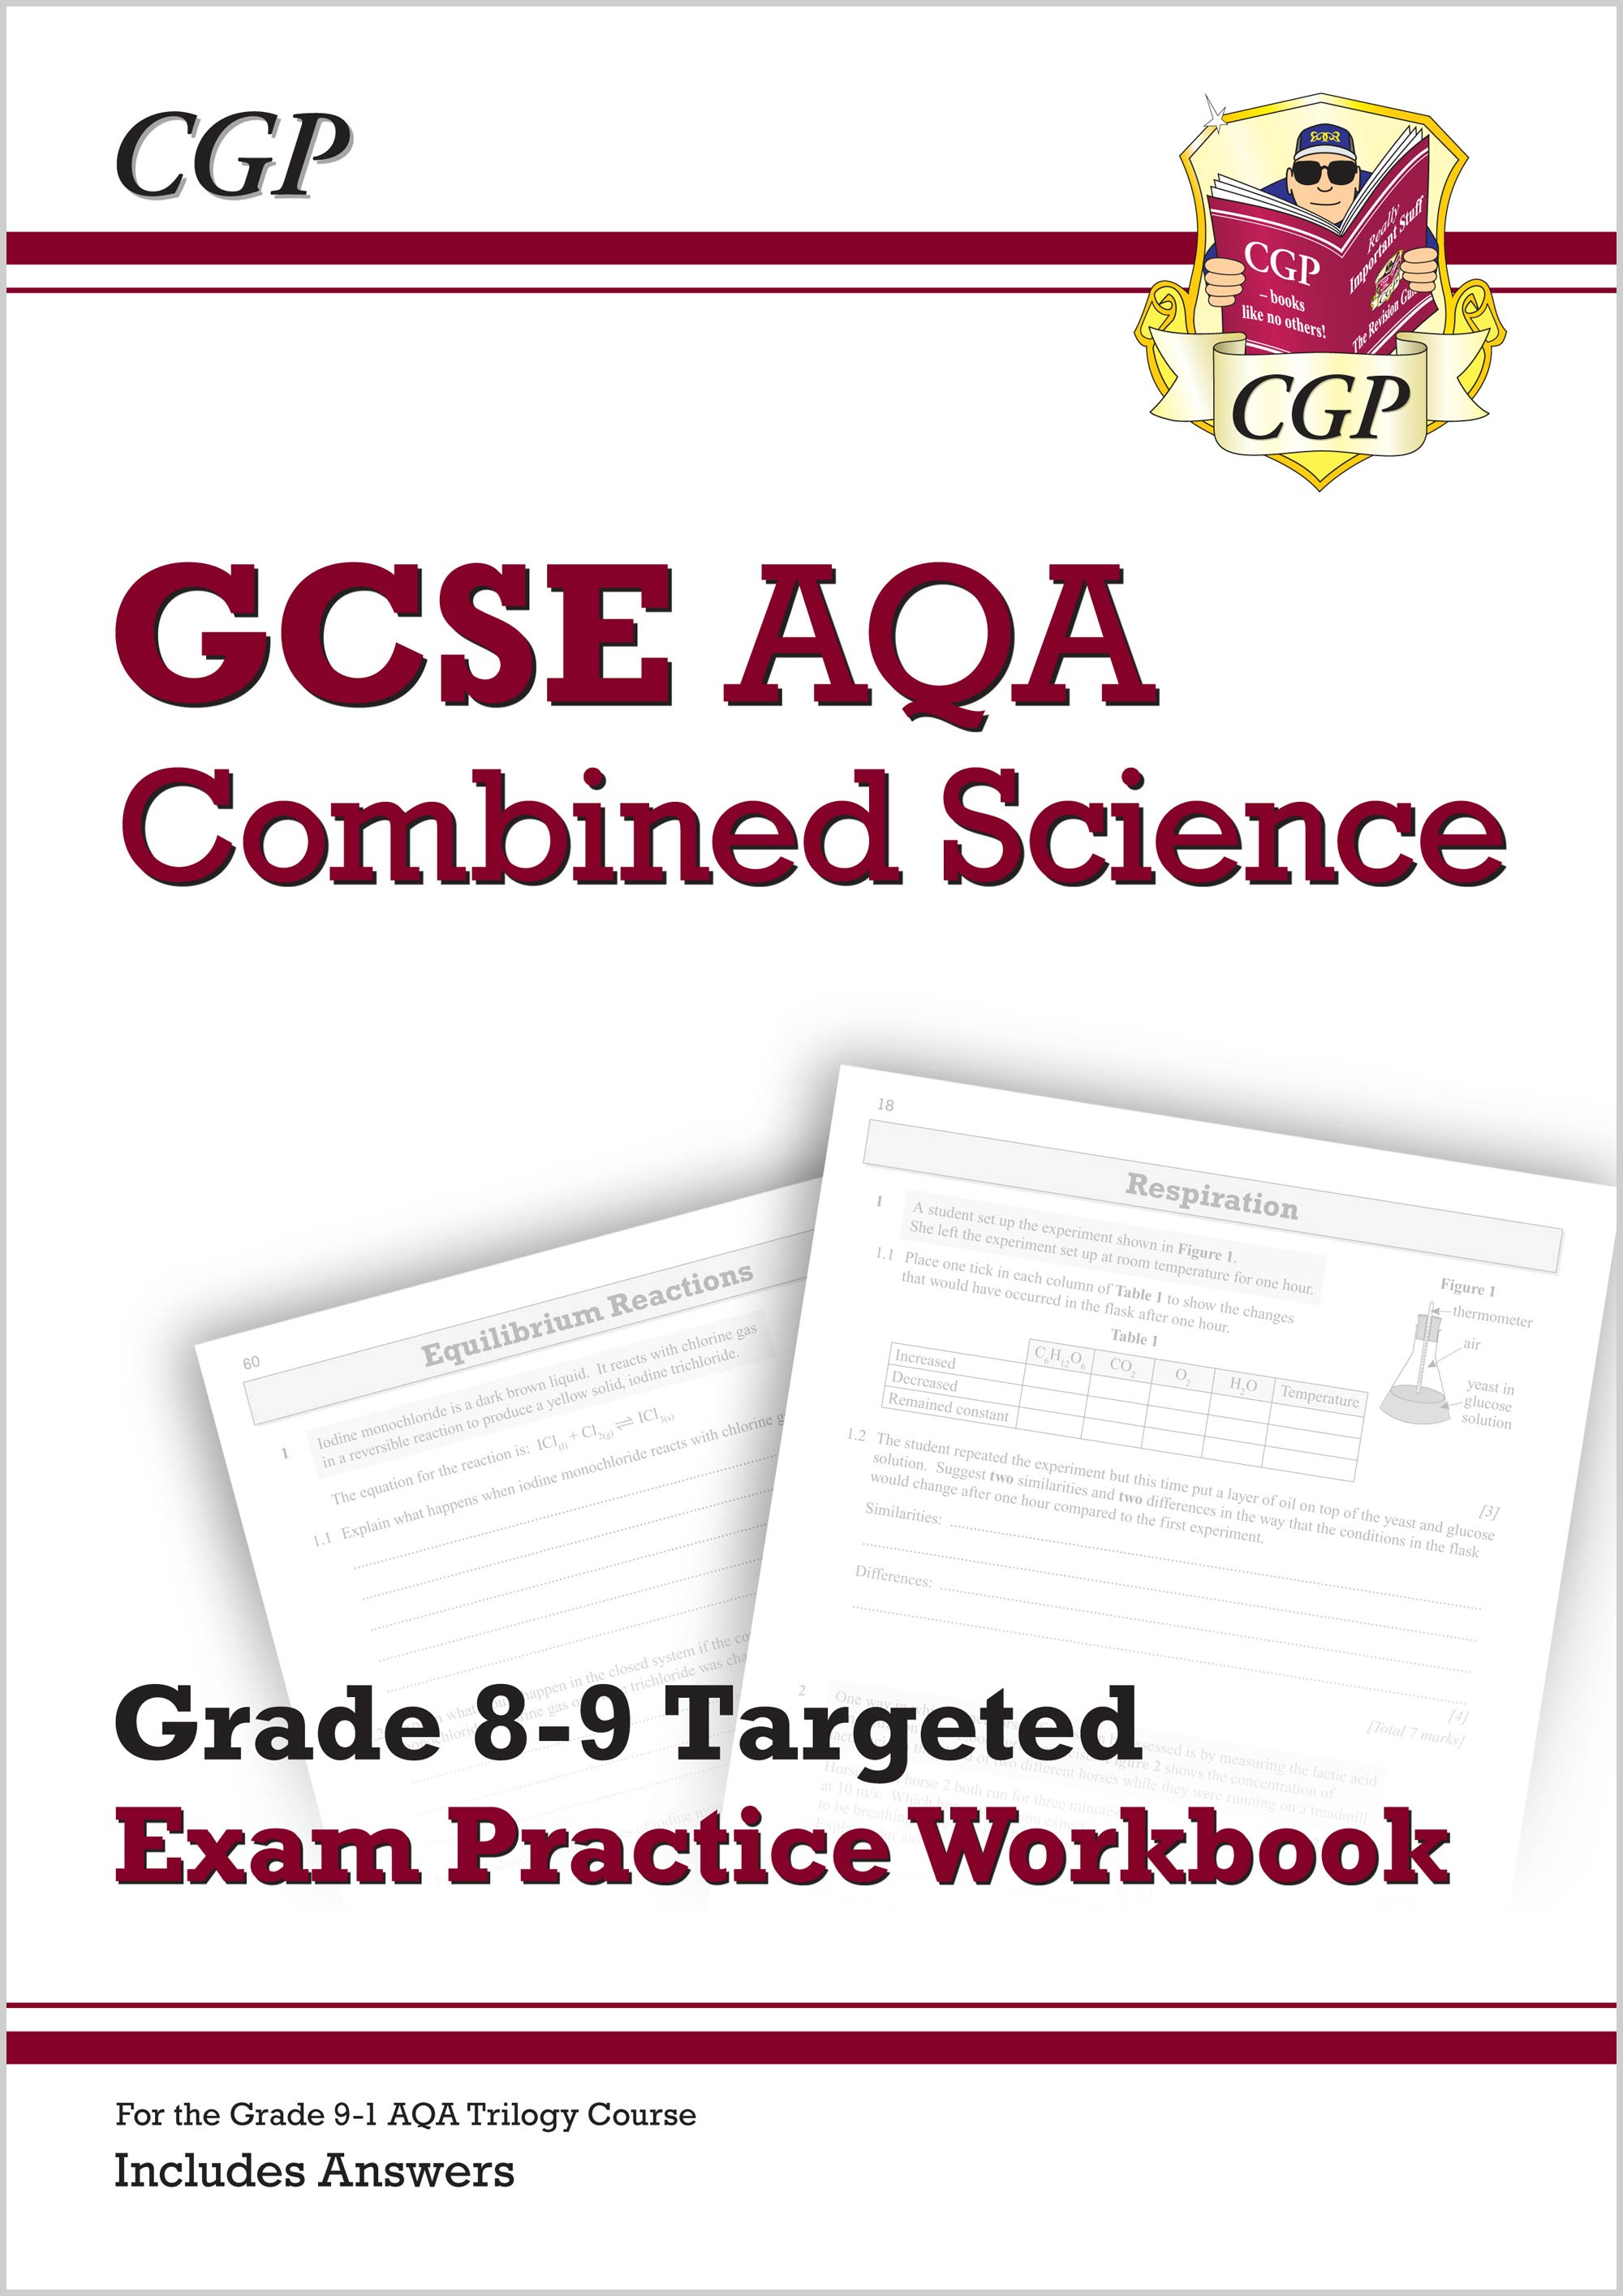 SA9Q41 - GCSE Combined Science AQA Grade 8-9 Targeted Exam Practice Workbook (includes Answers)